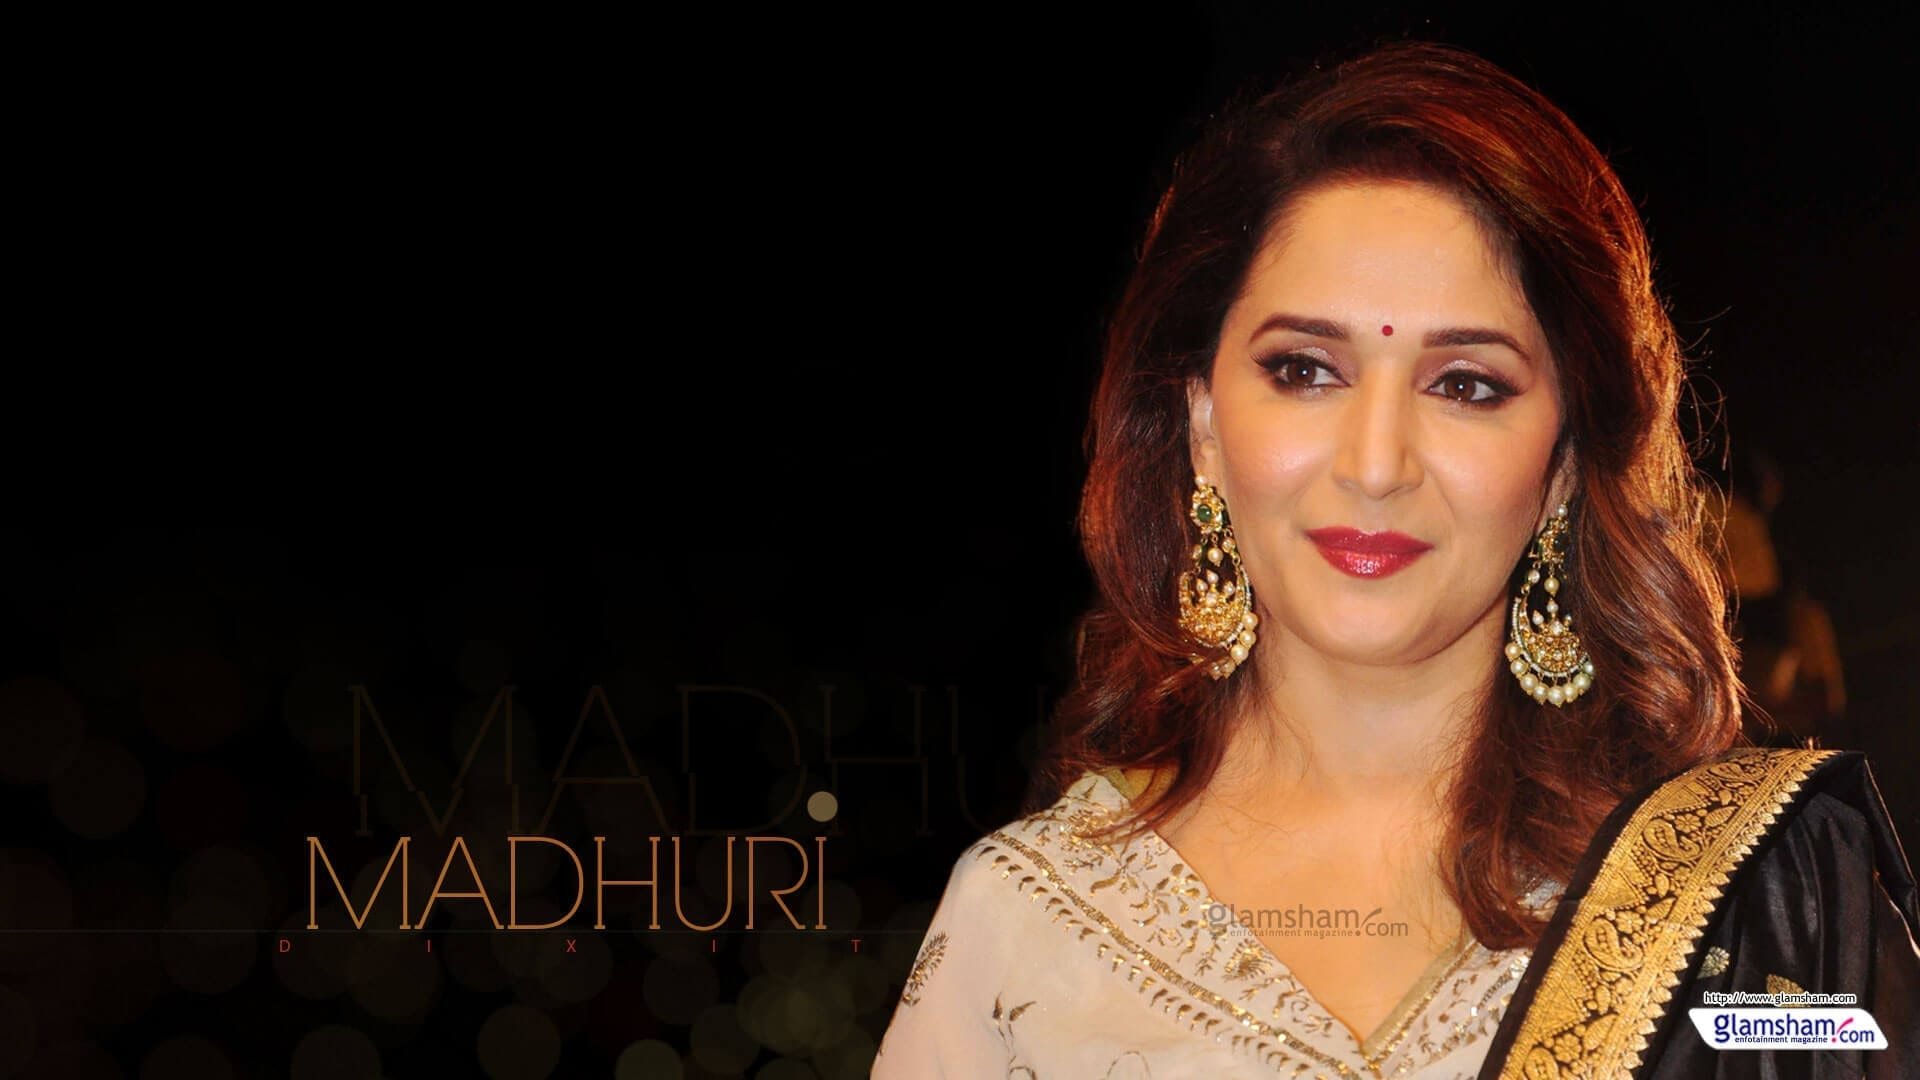 How to Meet Madhuri Dixit Face to Face